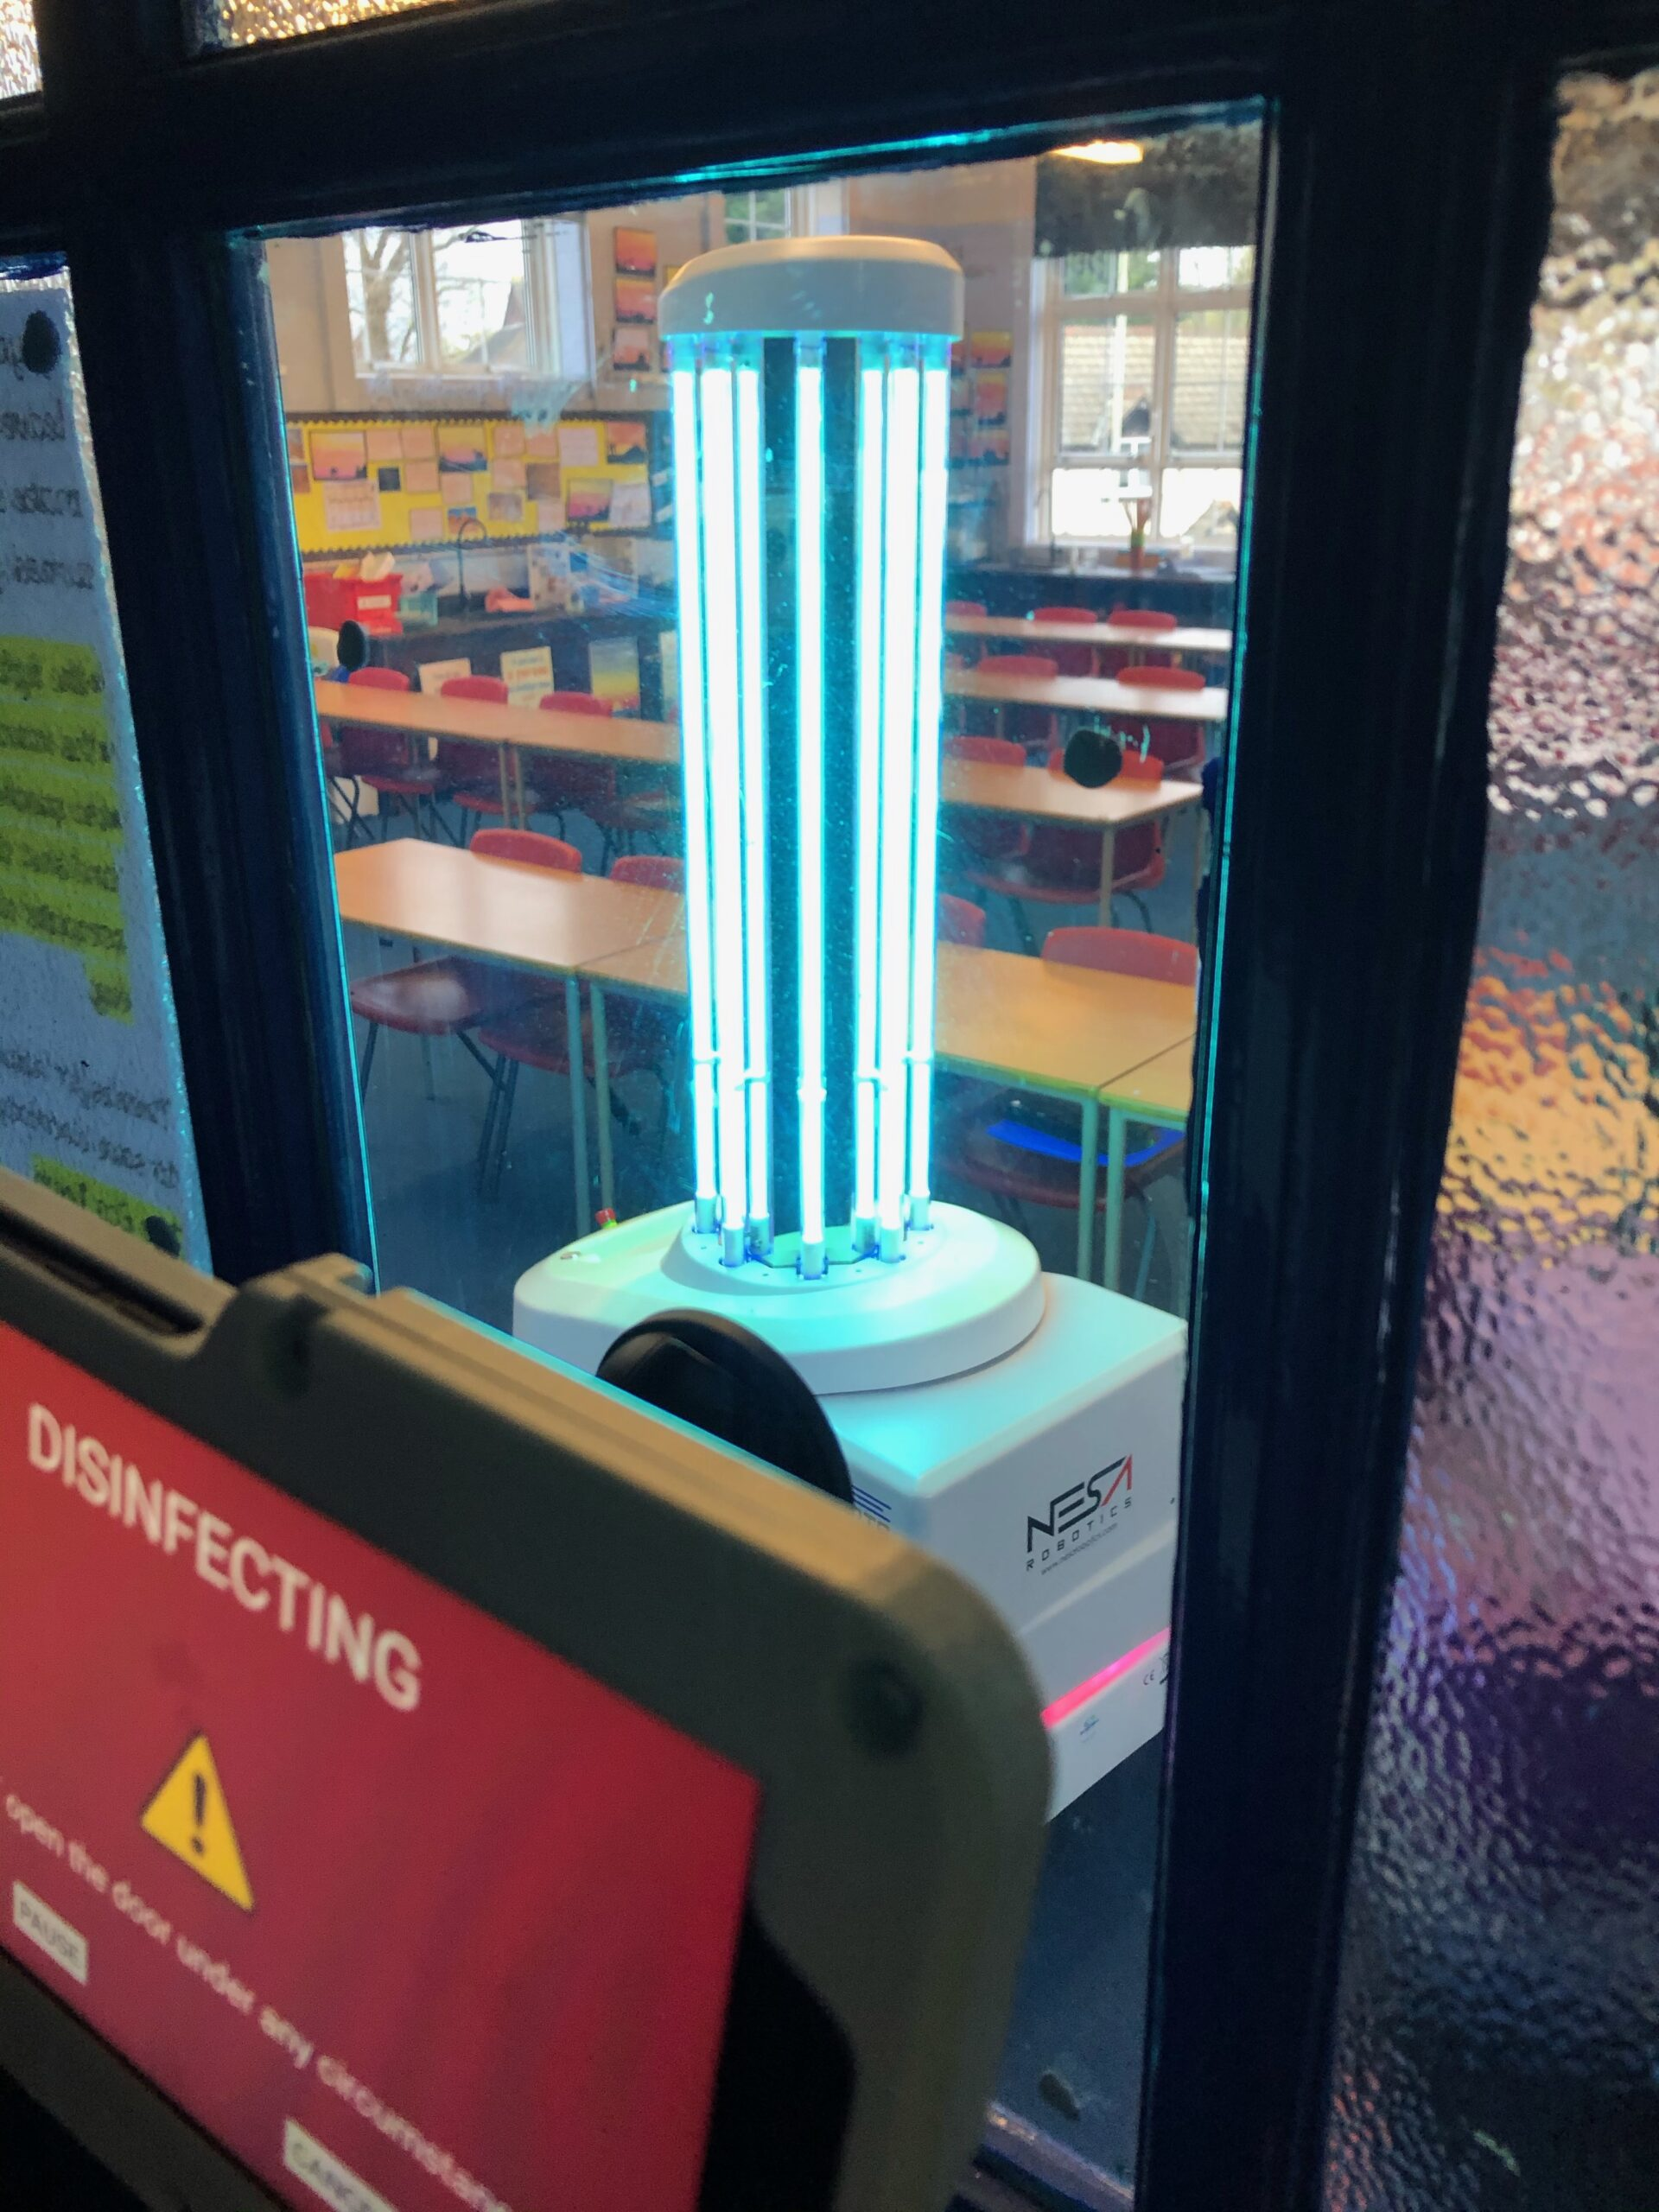 UVD Robot for education - disinfecting a classroom to protect students